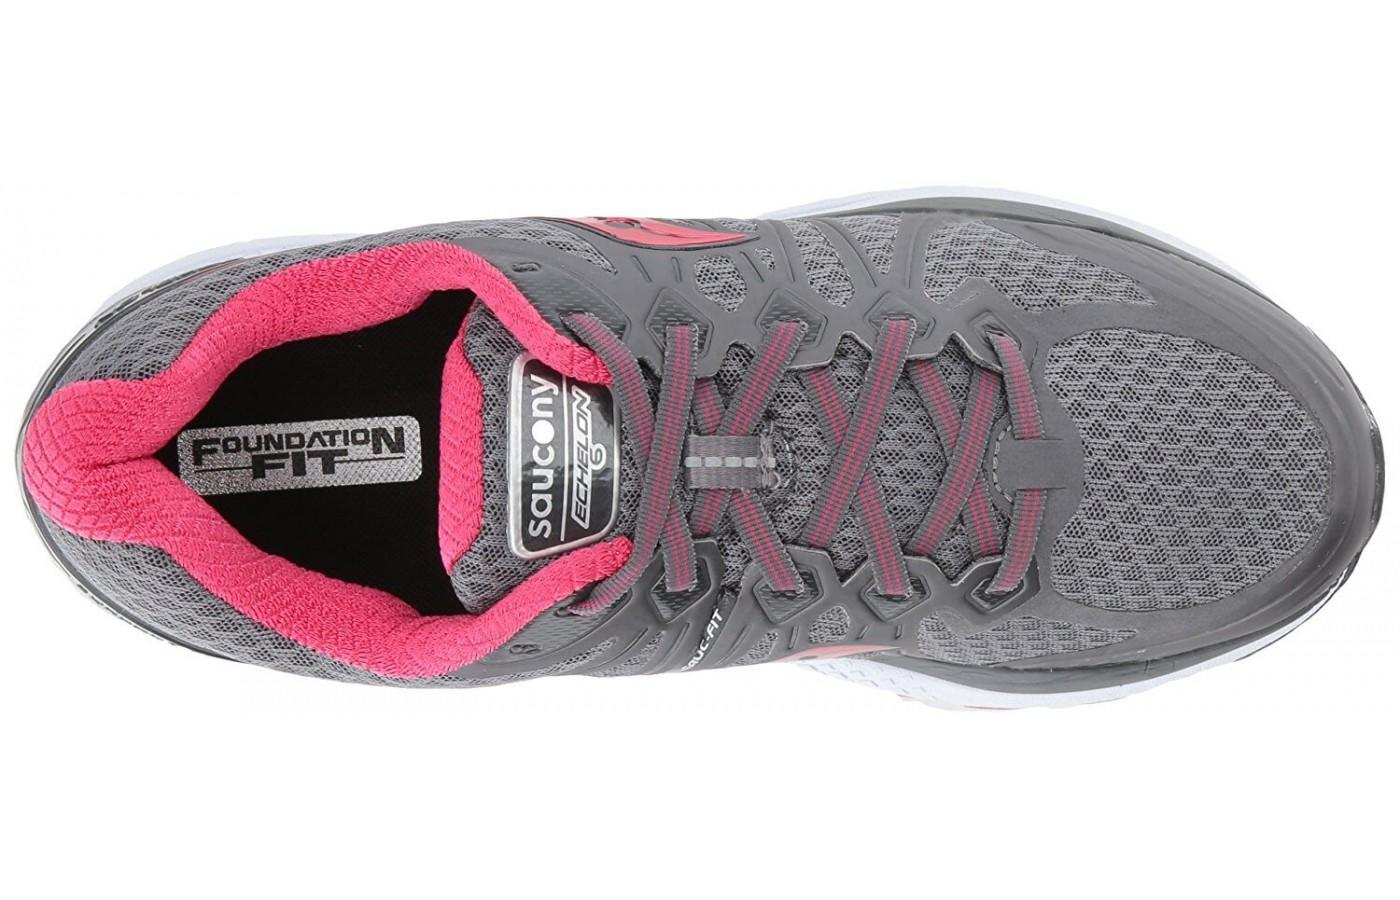 The upper of the Saucony Echelon 6 is designed for wide and narrow foot types